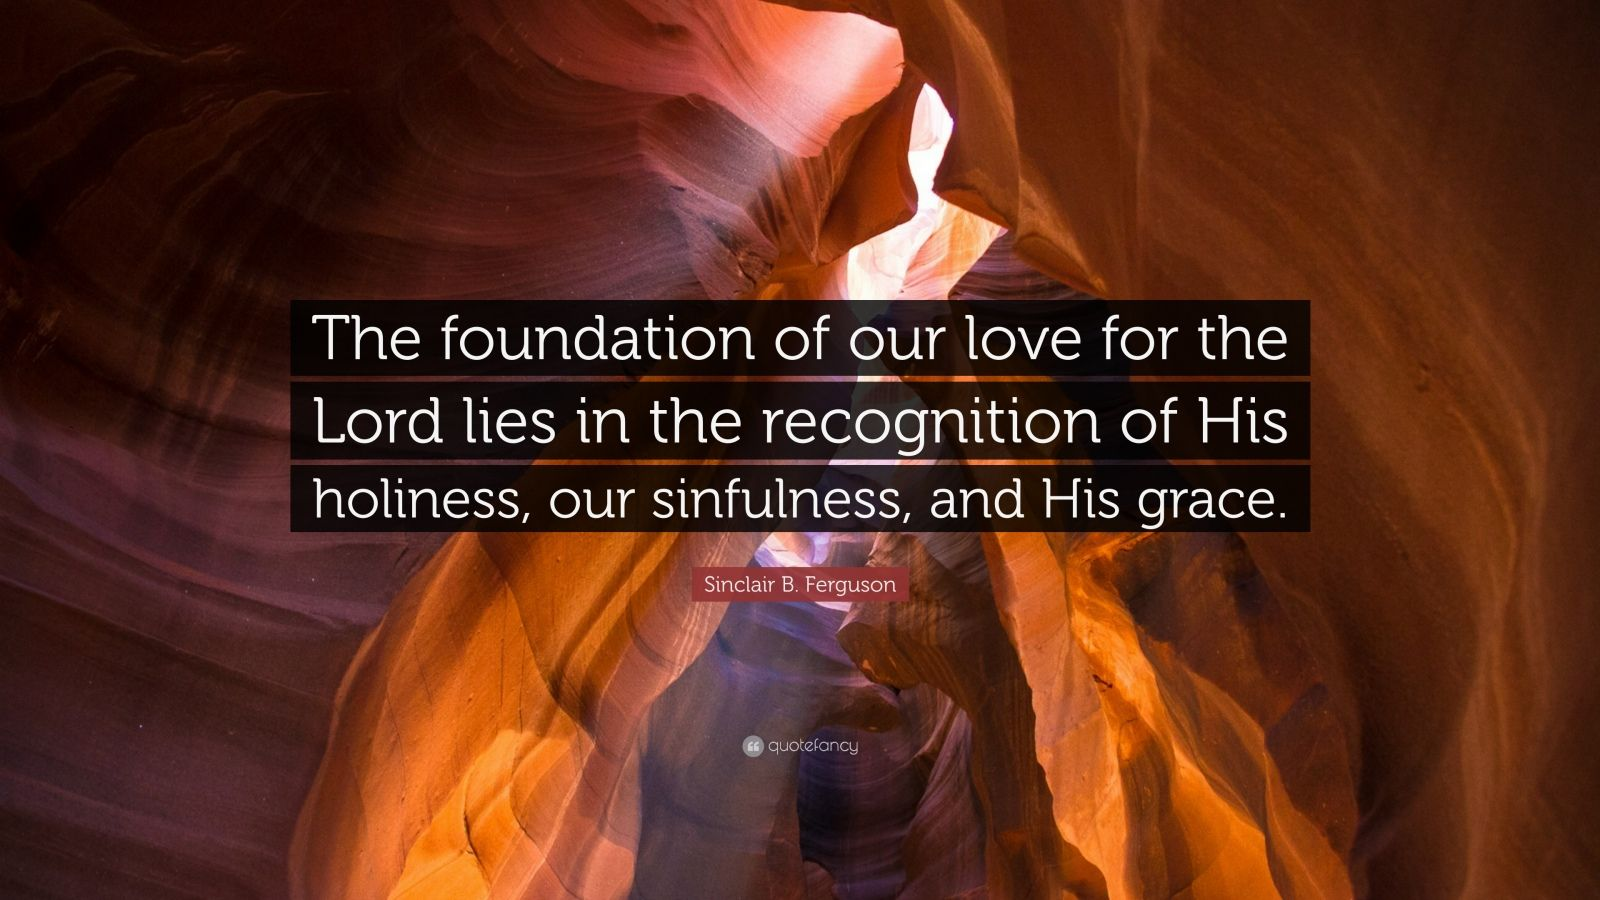 """Sinclair B. Ferguson Quote: """"The foundation of our love for the Lord lies in the recognition of His holiness, our sinfulness, and His grace."""""""